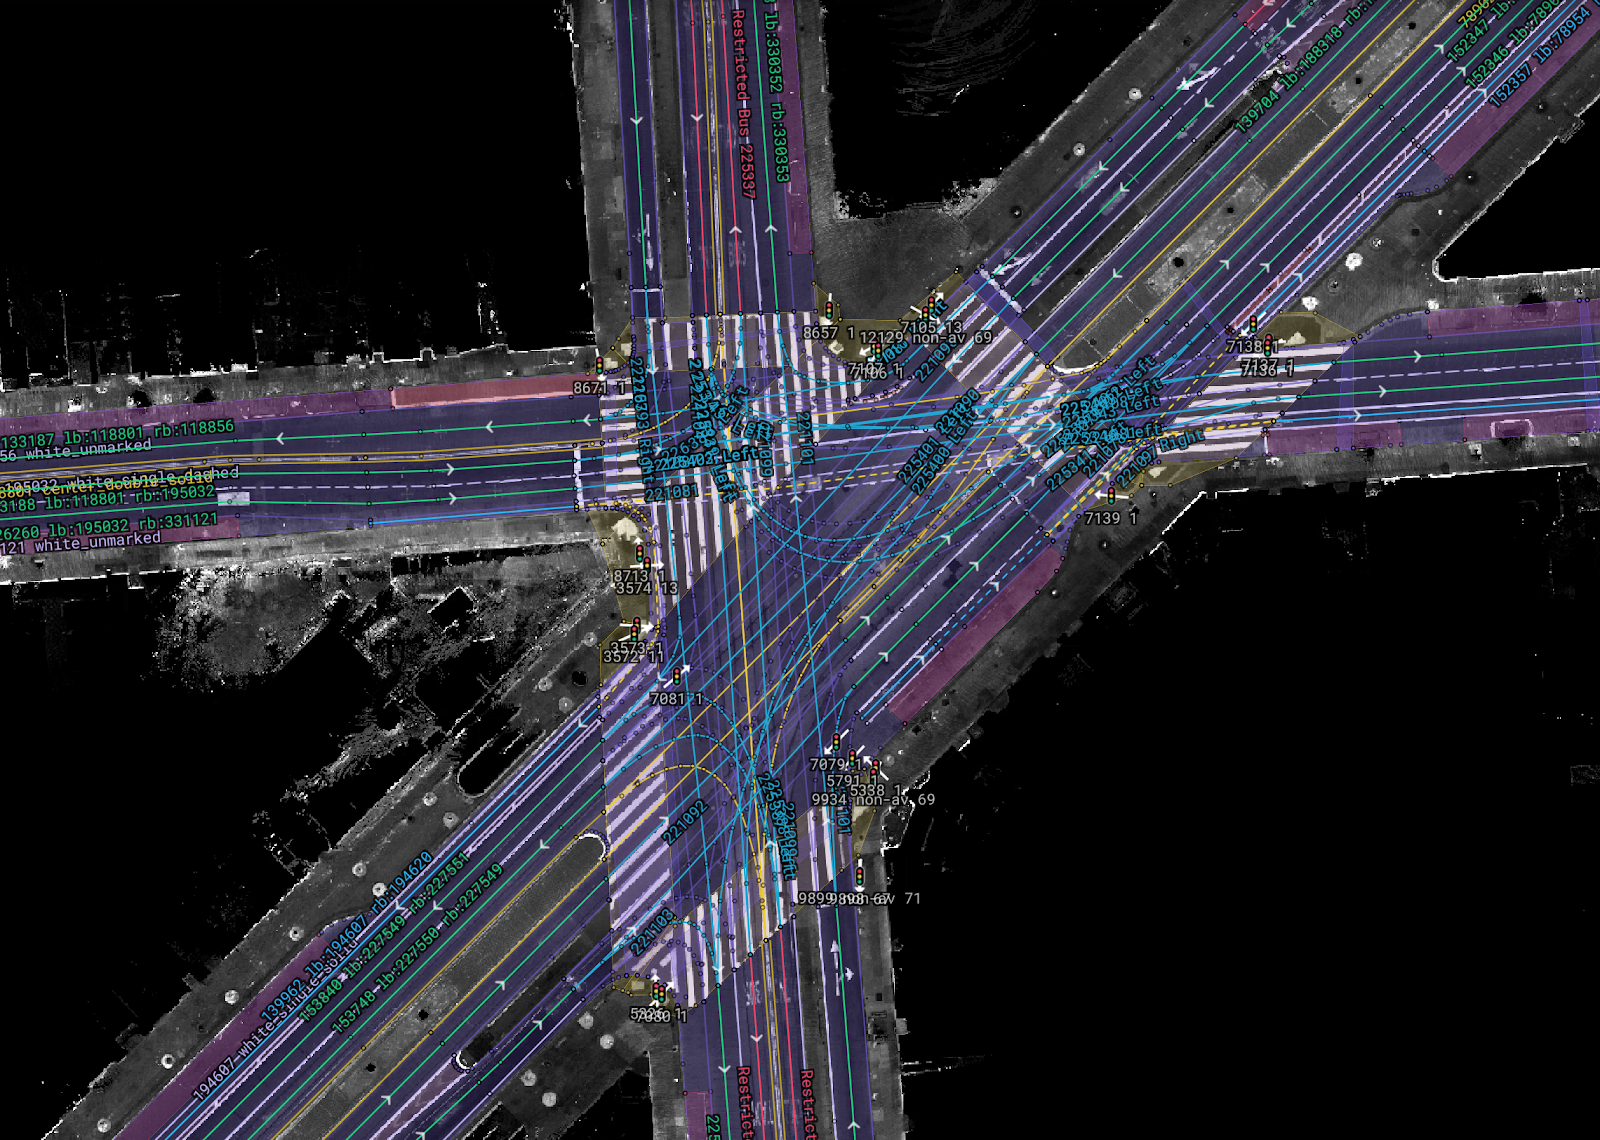 Semantic map labels at a Market Street intersection in San Francisco, created with Cruise's mapping tool, Cartographer